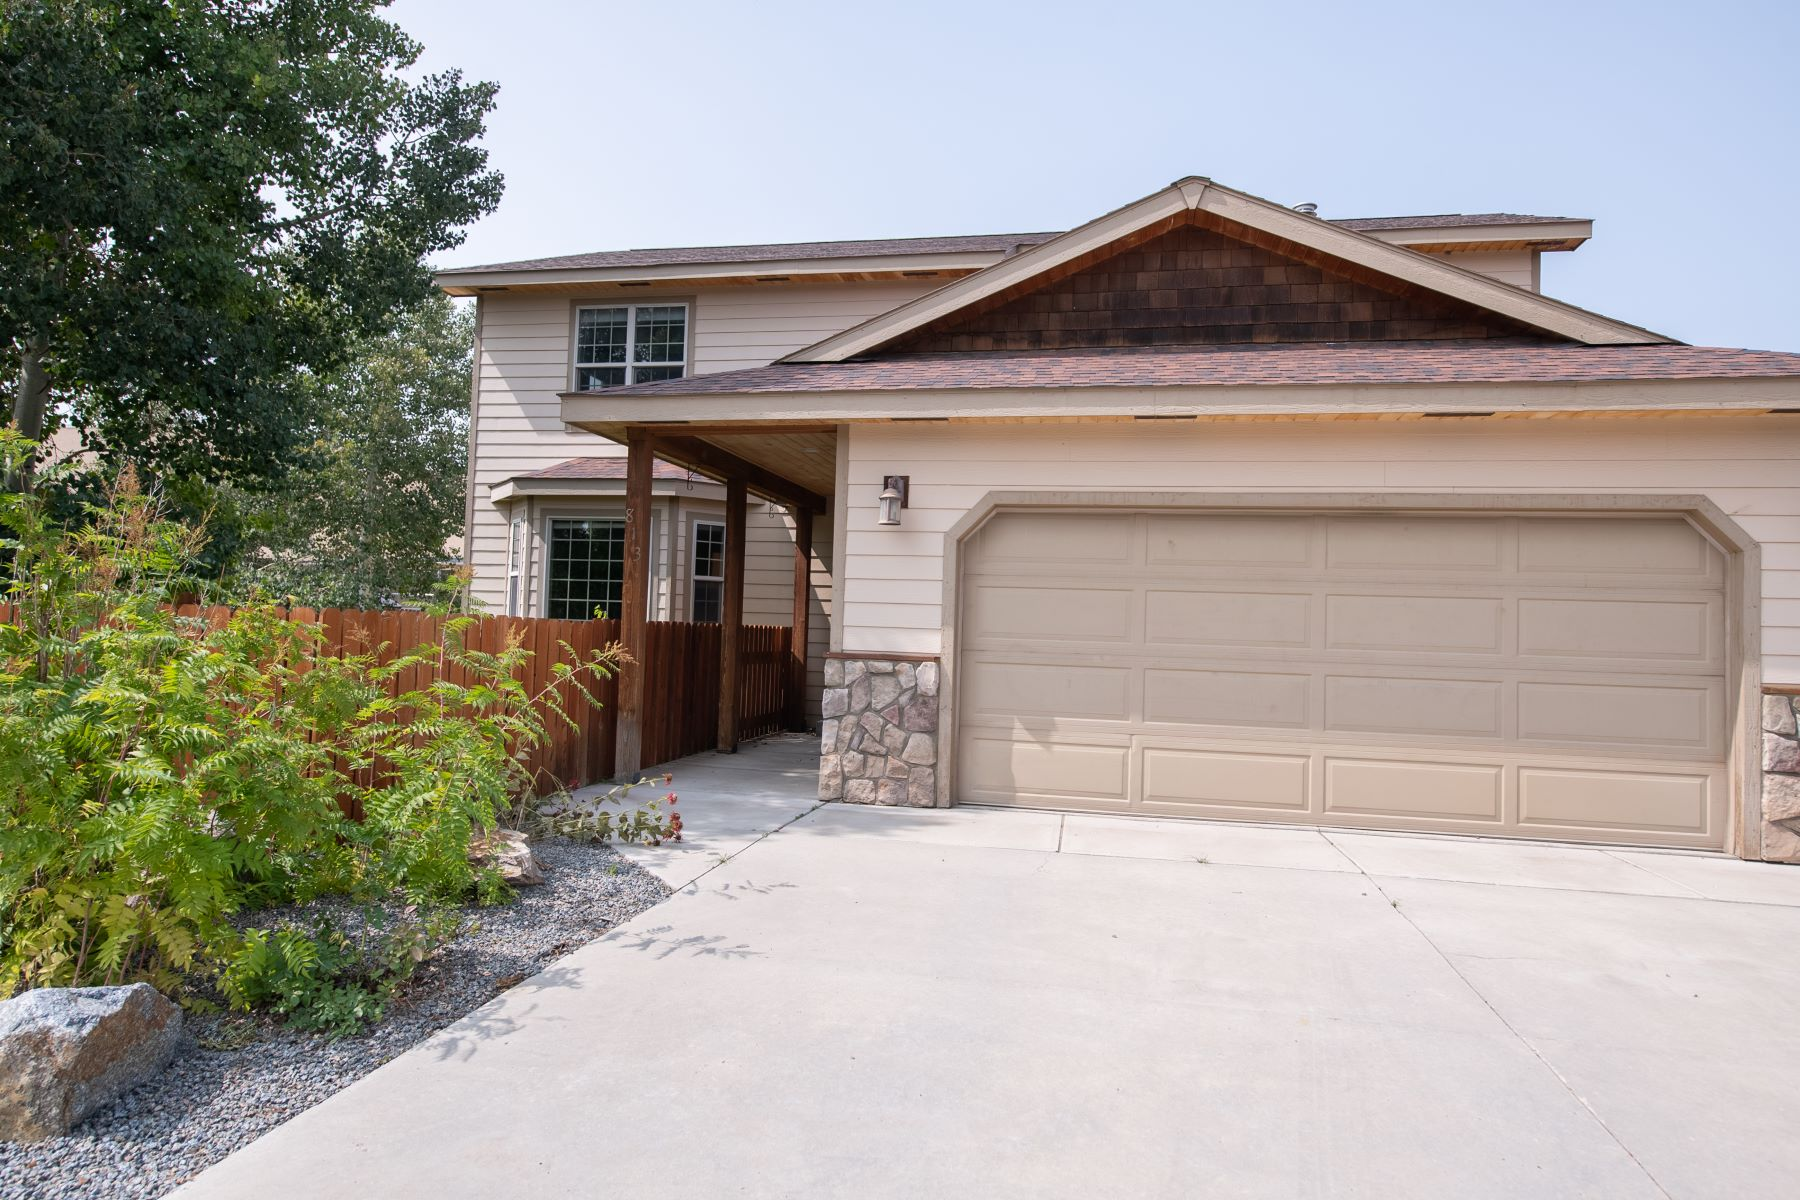 Single Family Homes for Active at Well Maintained 4 Bd, 3 Ba Home in Pleasant Gunnison Neighborhood 813 Sunny Slope Drive Gunnison, Colorado 81230 United States